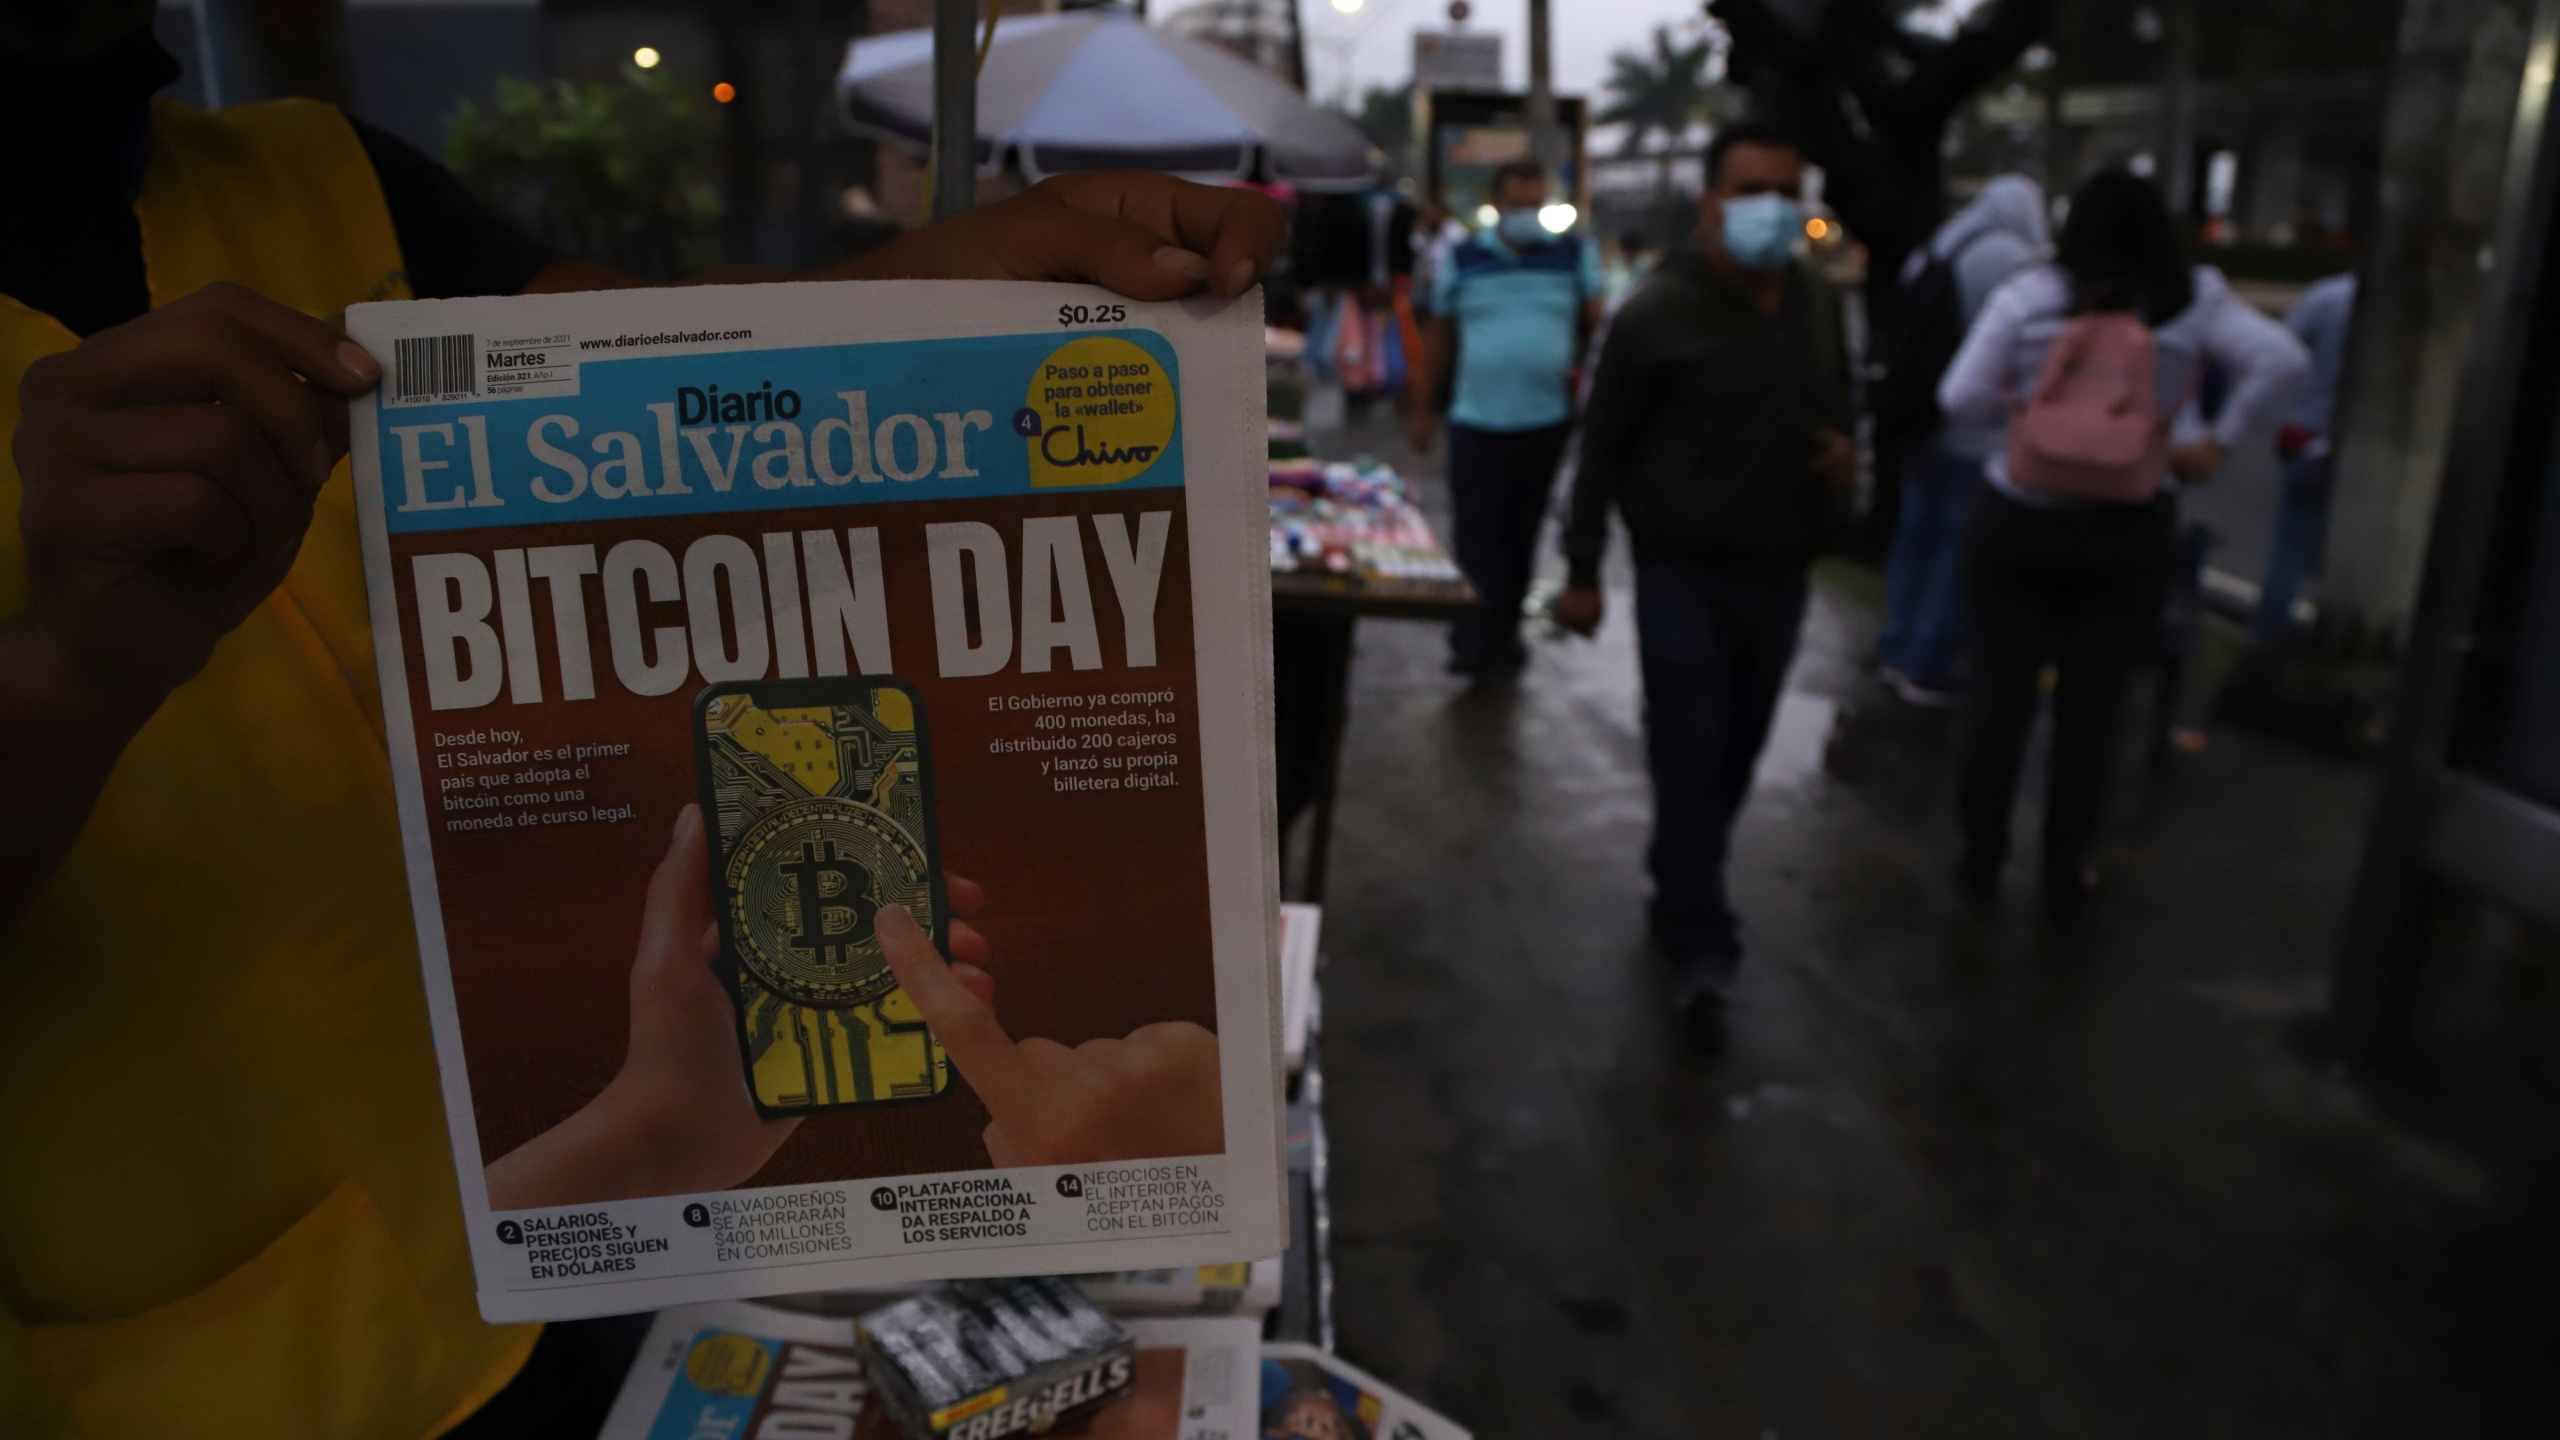 """A newspaper vendor shows the front page of a state-run newspaper carrying the headline """"Bitcoin Day"""" in San Salvador, El Salvador on Sept. 7, 2021. (Salvador Melendez/Associated Press)"""